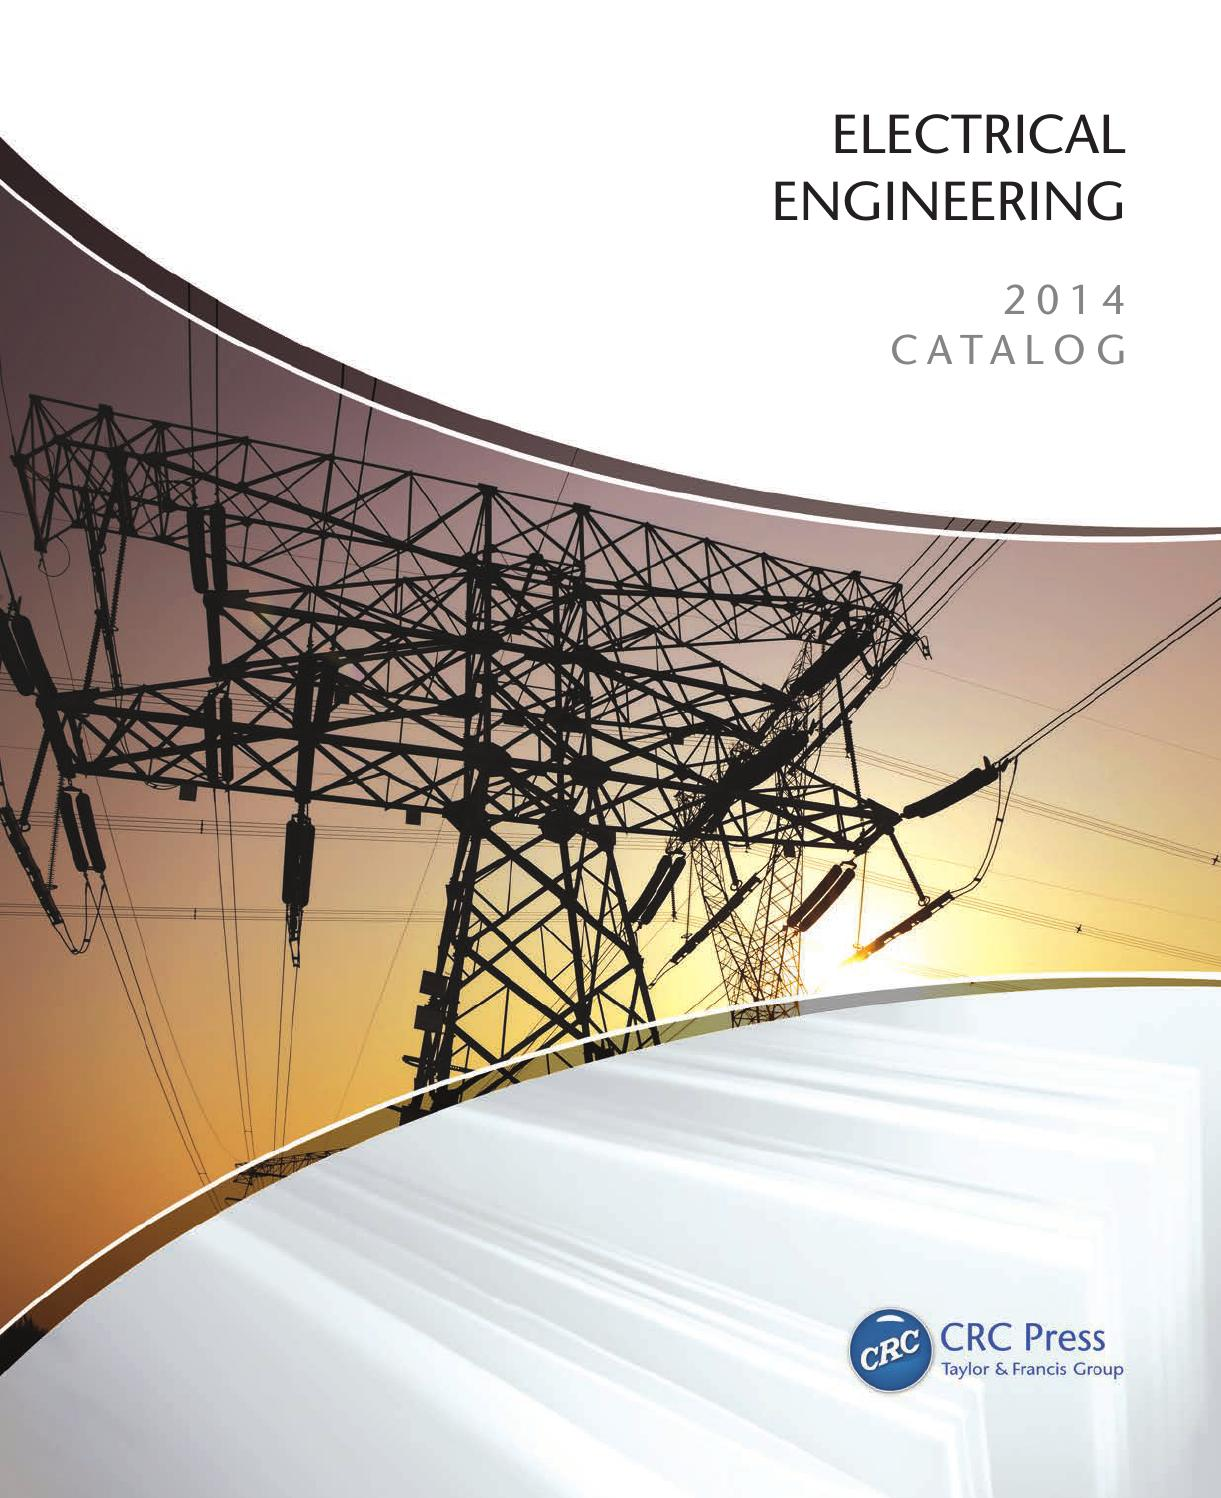 Electrical Engineering By Crc Press Issuu History And Evolution Of Integrated Circuits Vlsi Encyclopedia